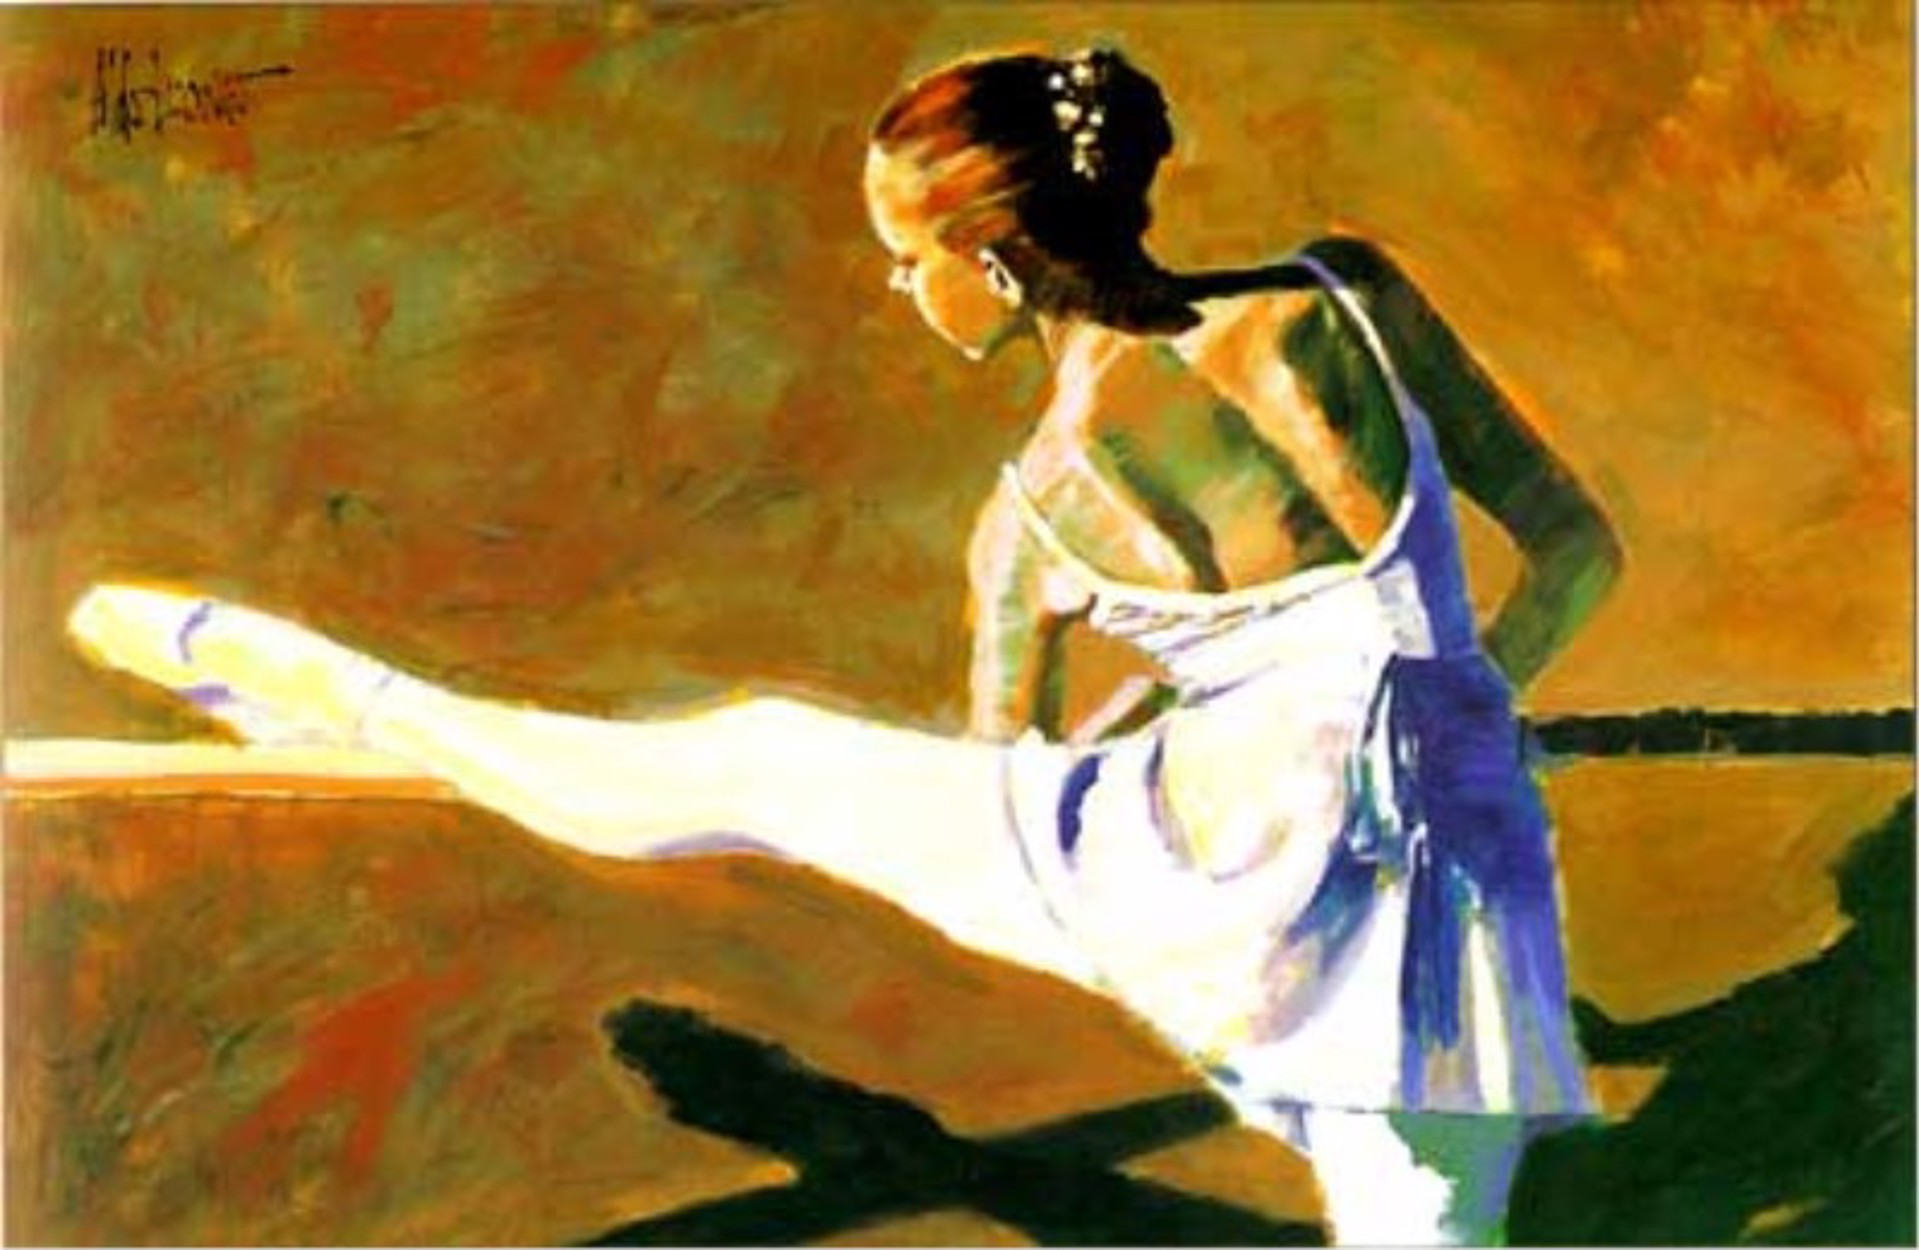 At The Barre (AP) (1 left) by Aldo Luongo